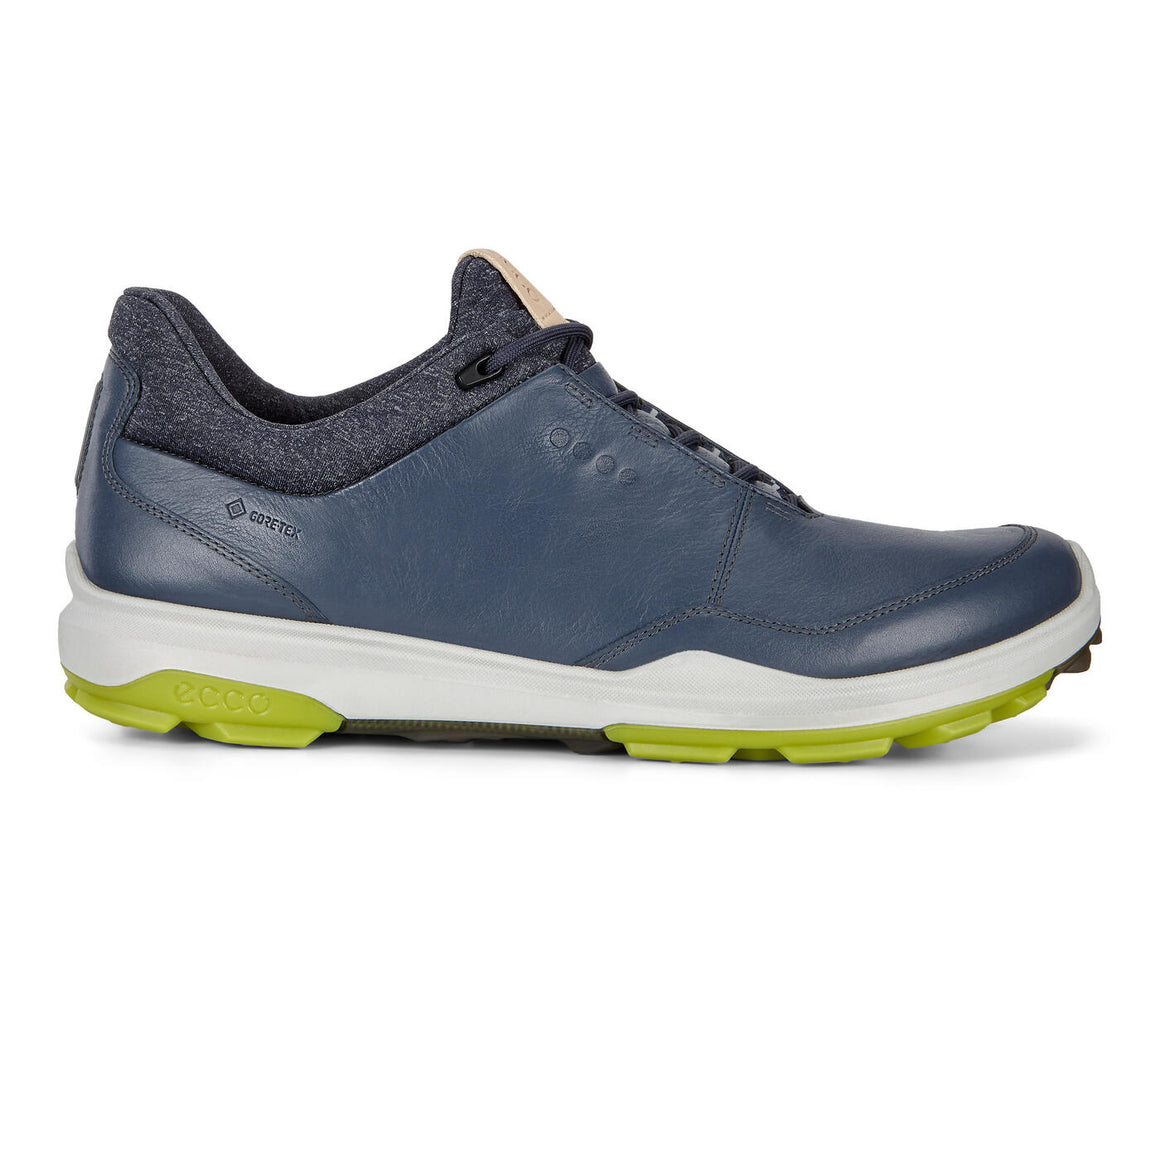 Biom Hybrid 3 Golf Shoe